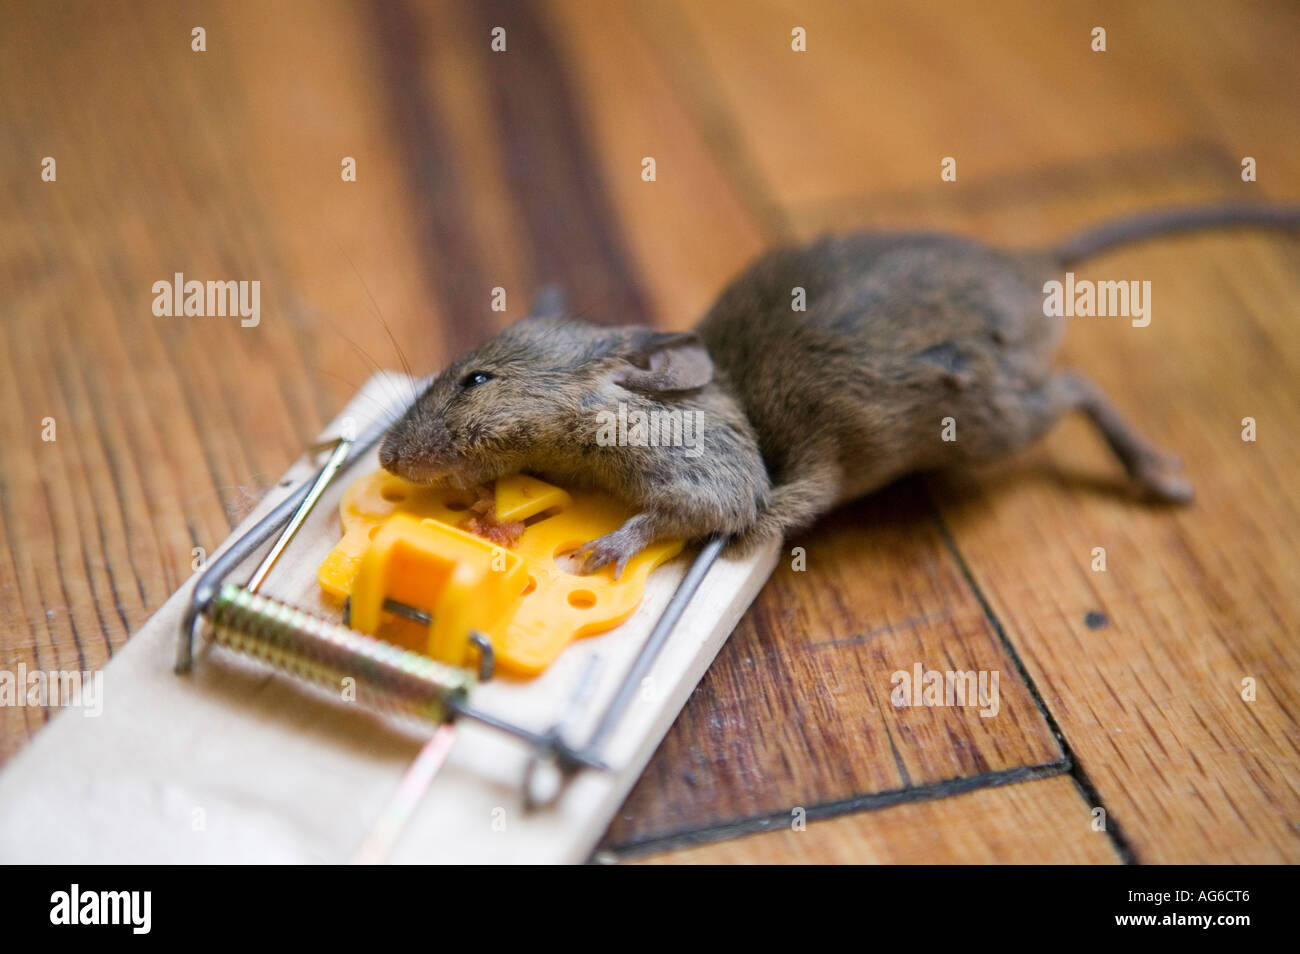 Mouse Caught In A Trap In An Apartment July 2006 Stock